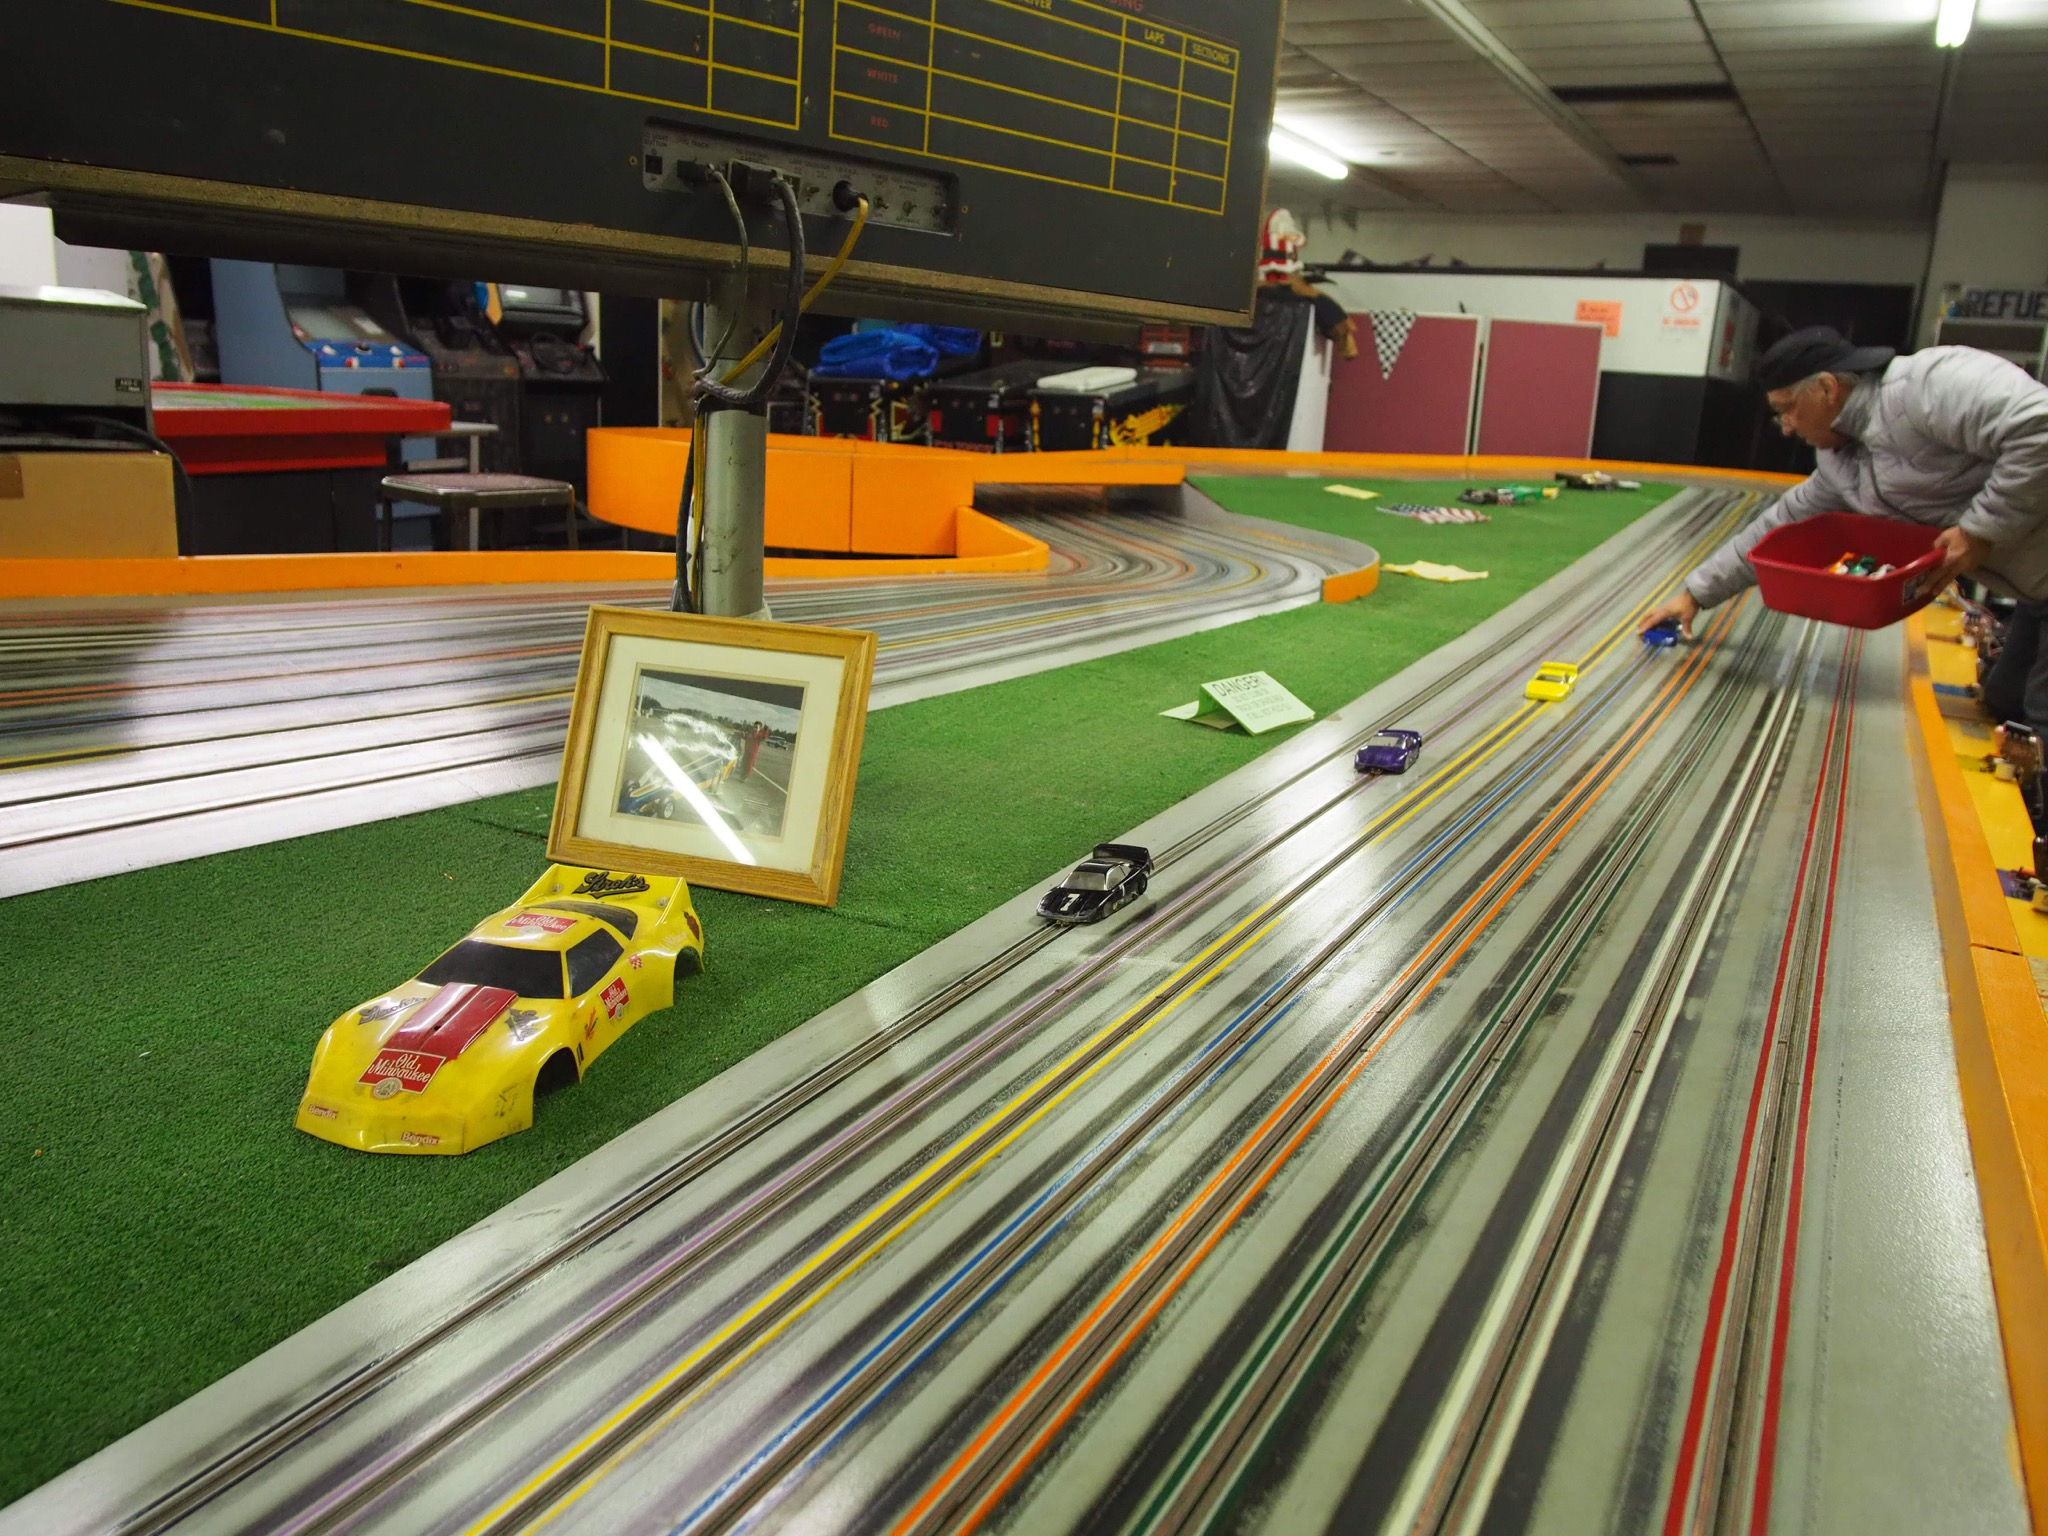 One of the race tracks at Buzz-A-Rama, NYC's last remaining dedicated slot car racing track.